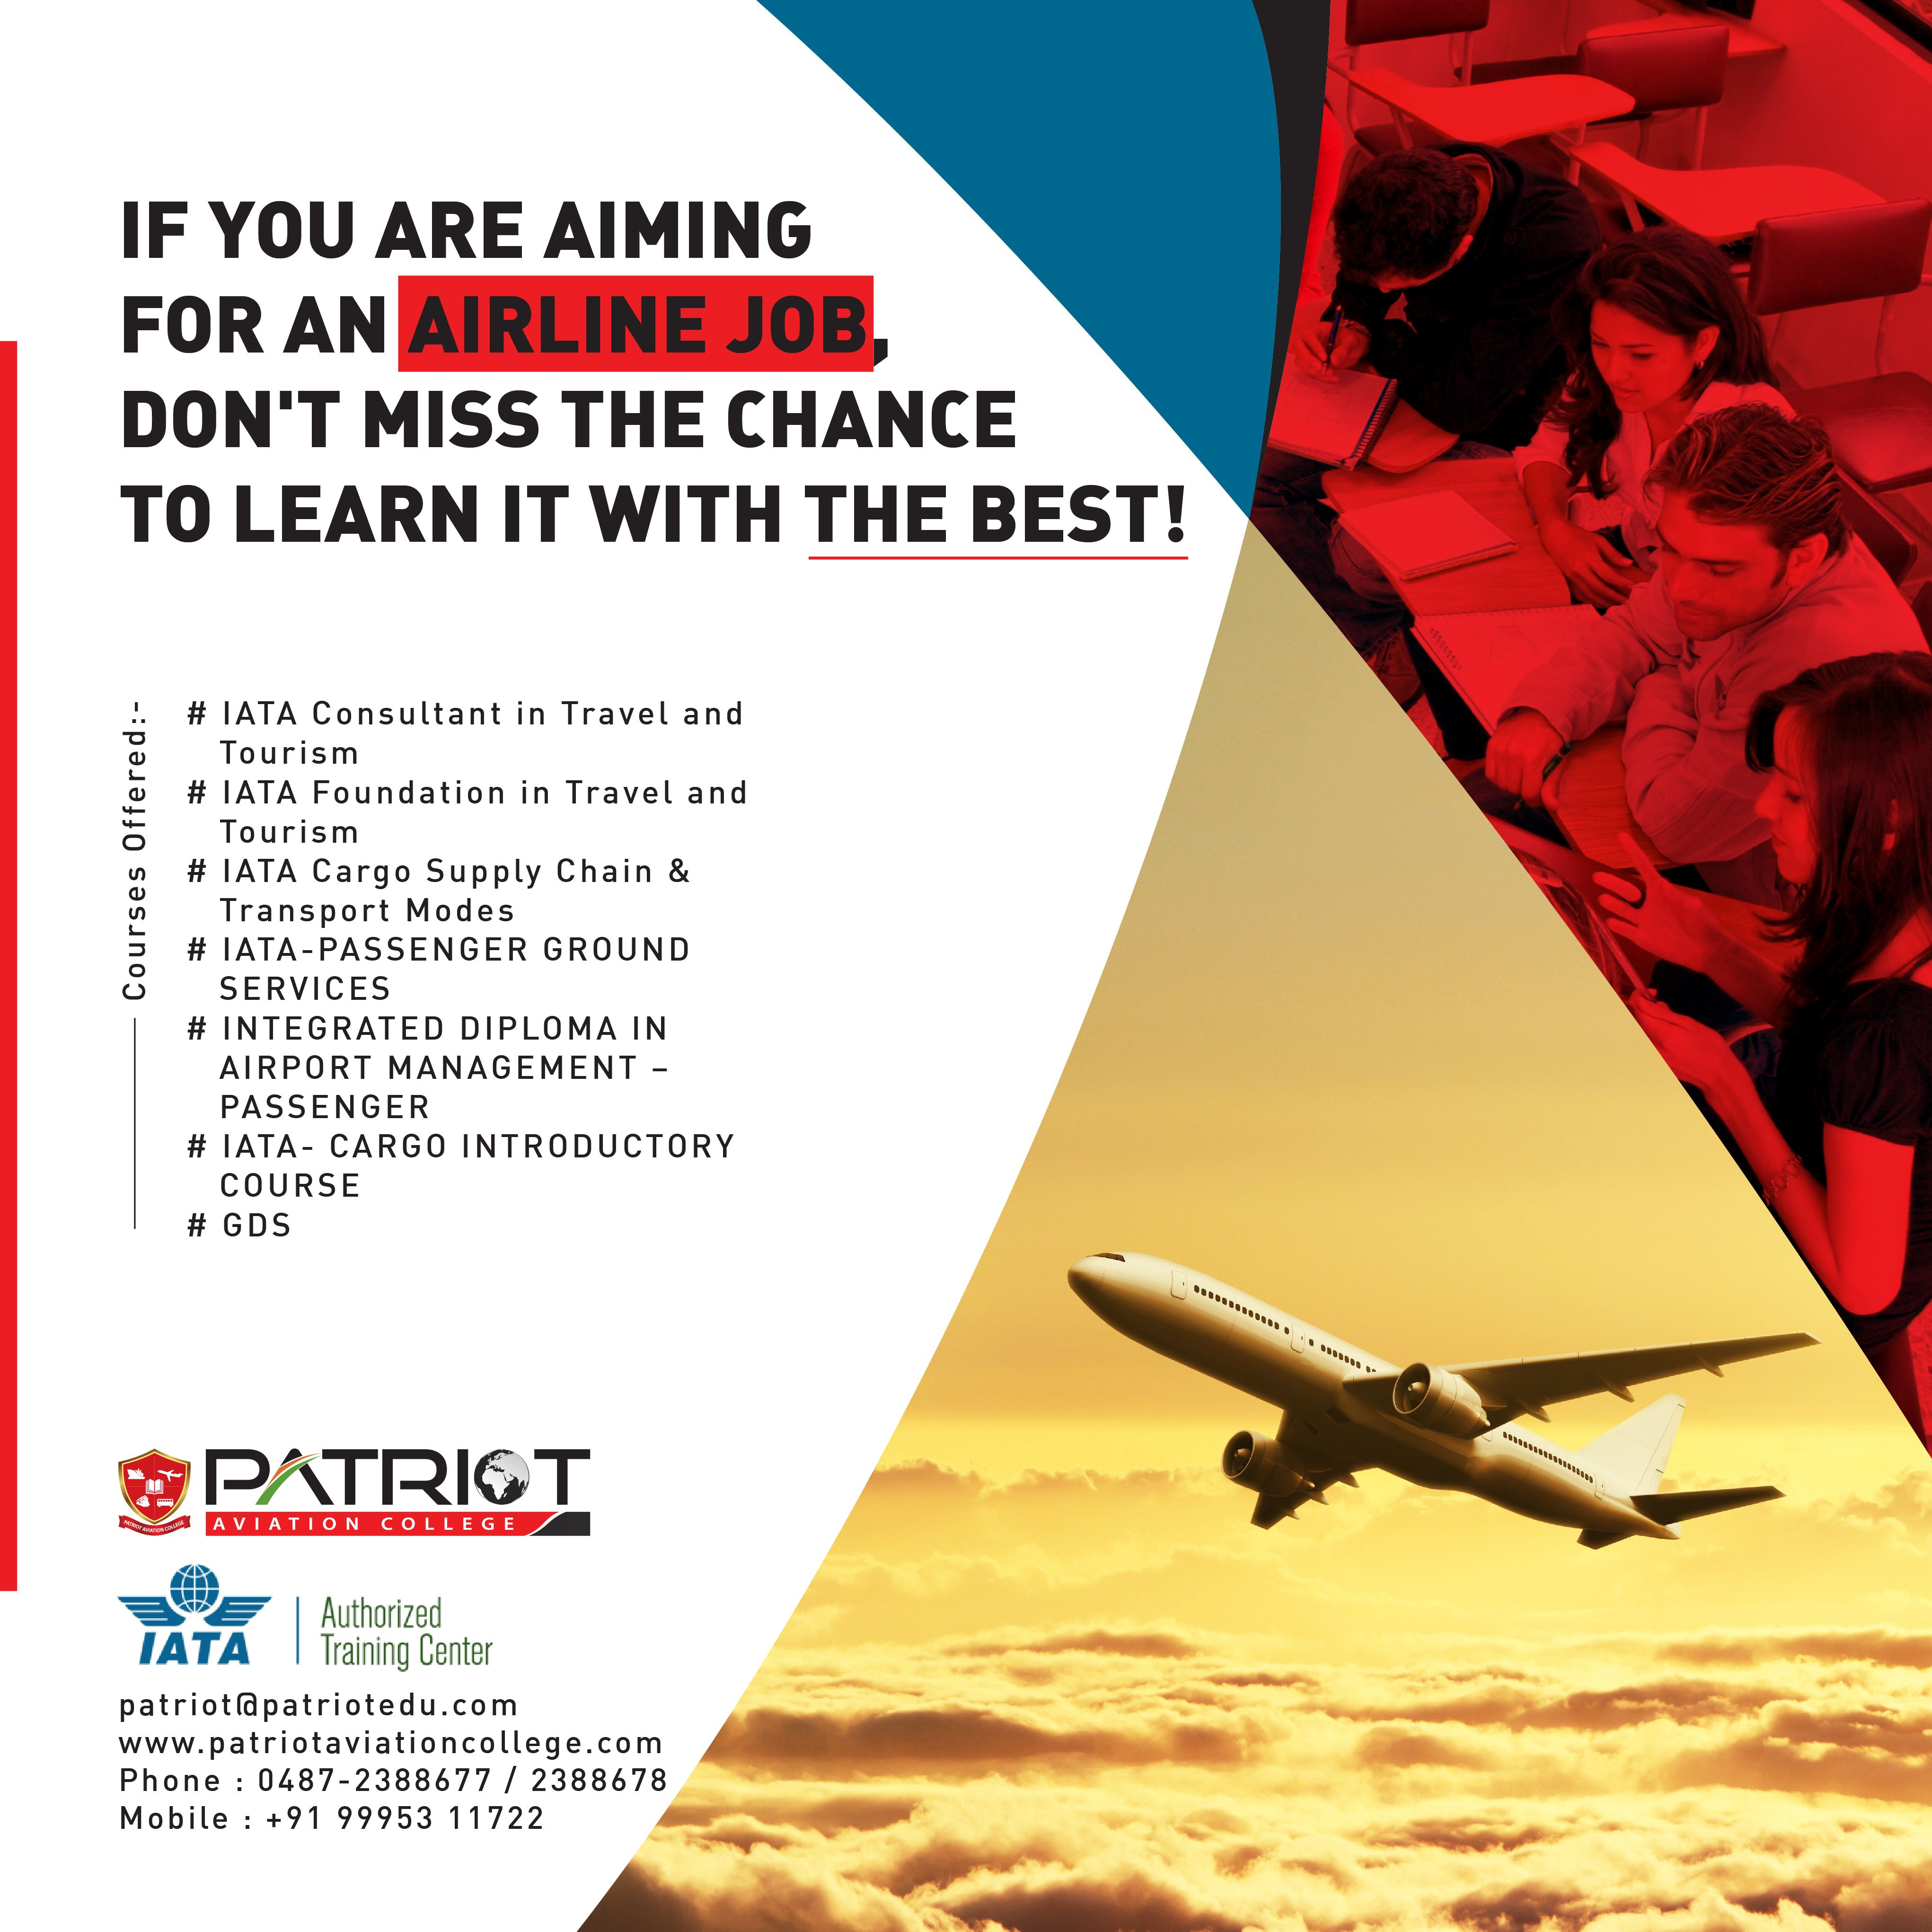 Join Patriot Aviation College For IATA Courses That